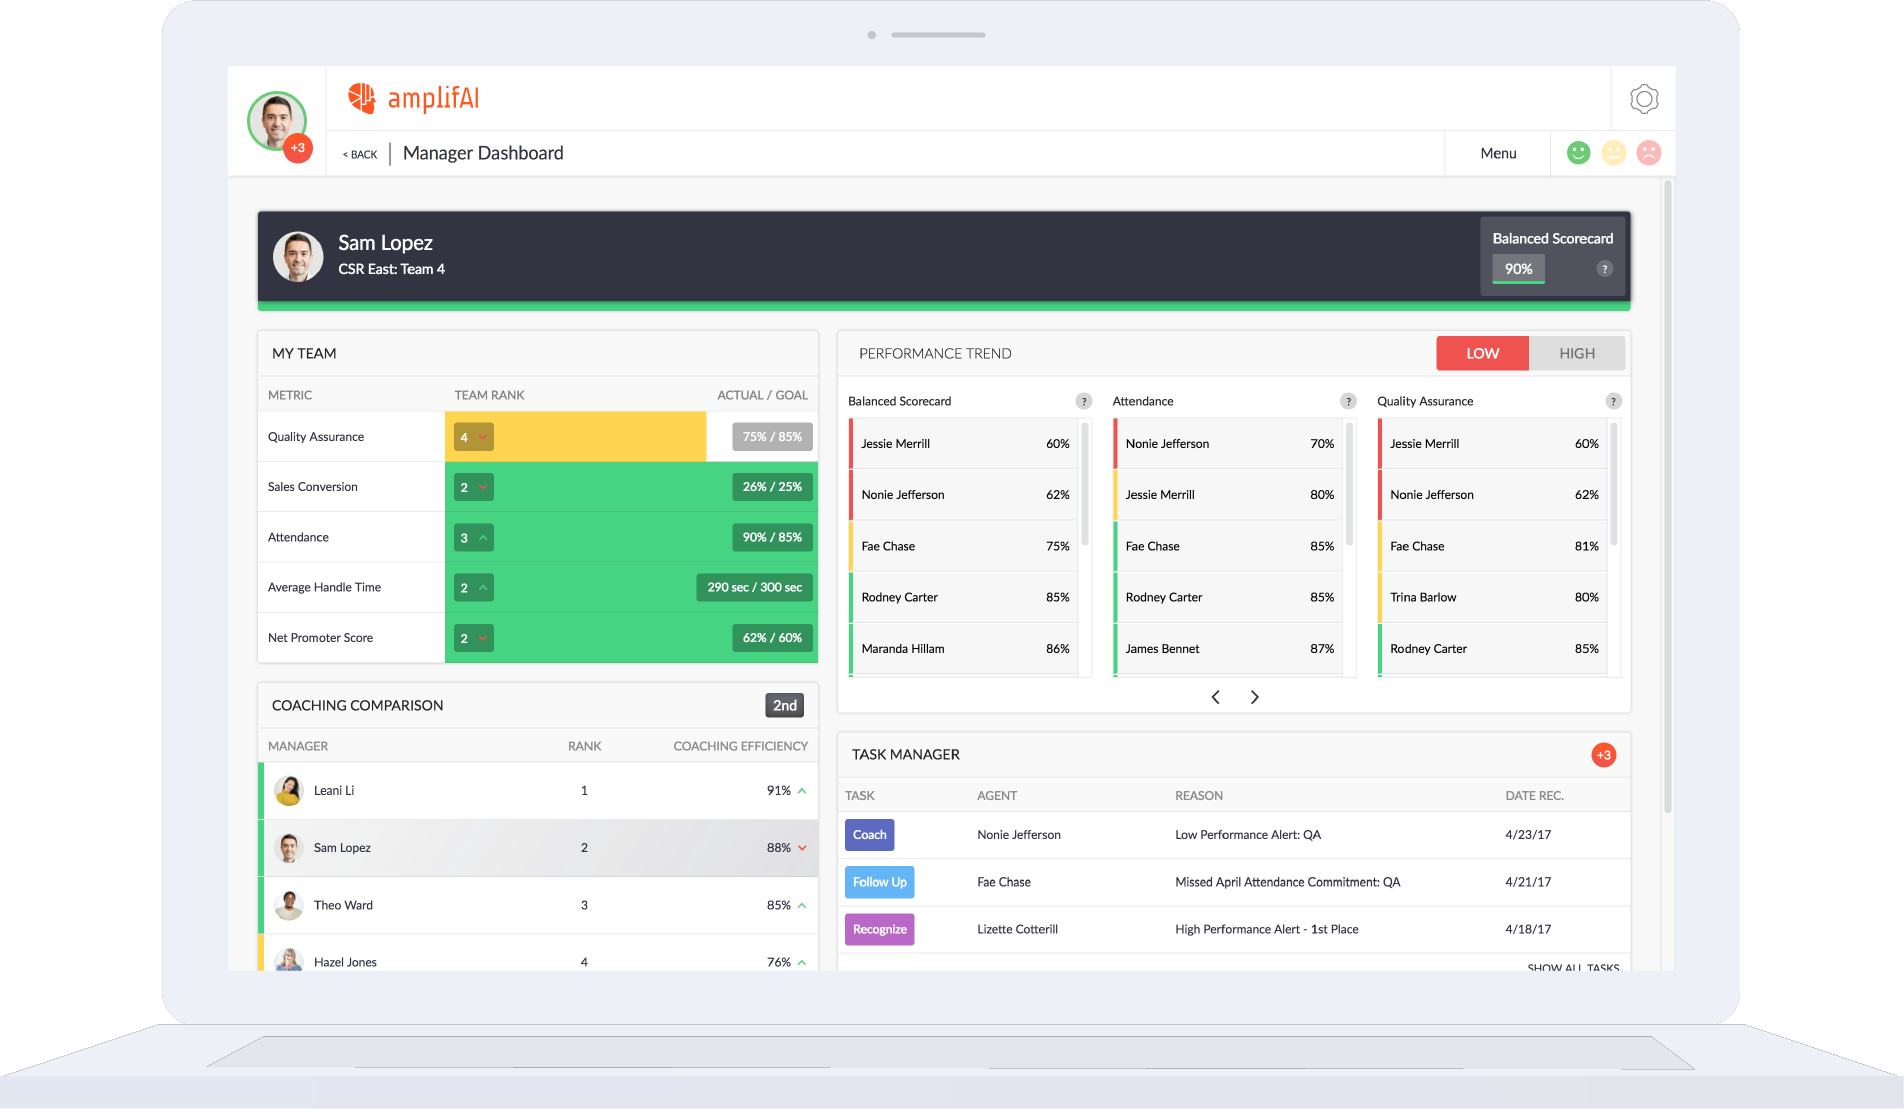 Manager Dashboard My Team Coaching Comparison Effectiveness Efficiency Performance Trends